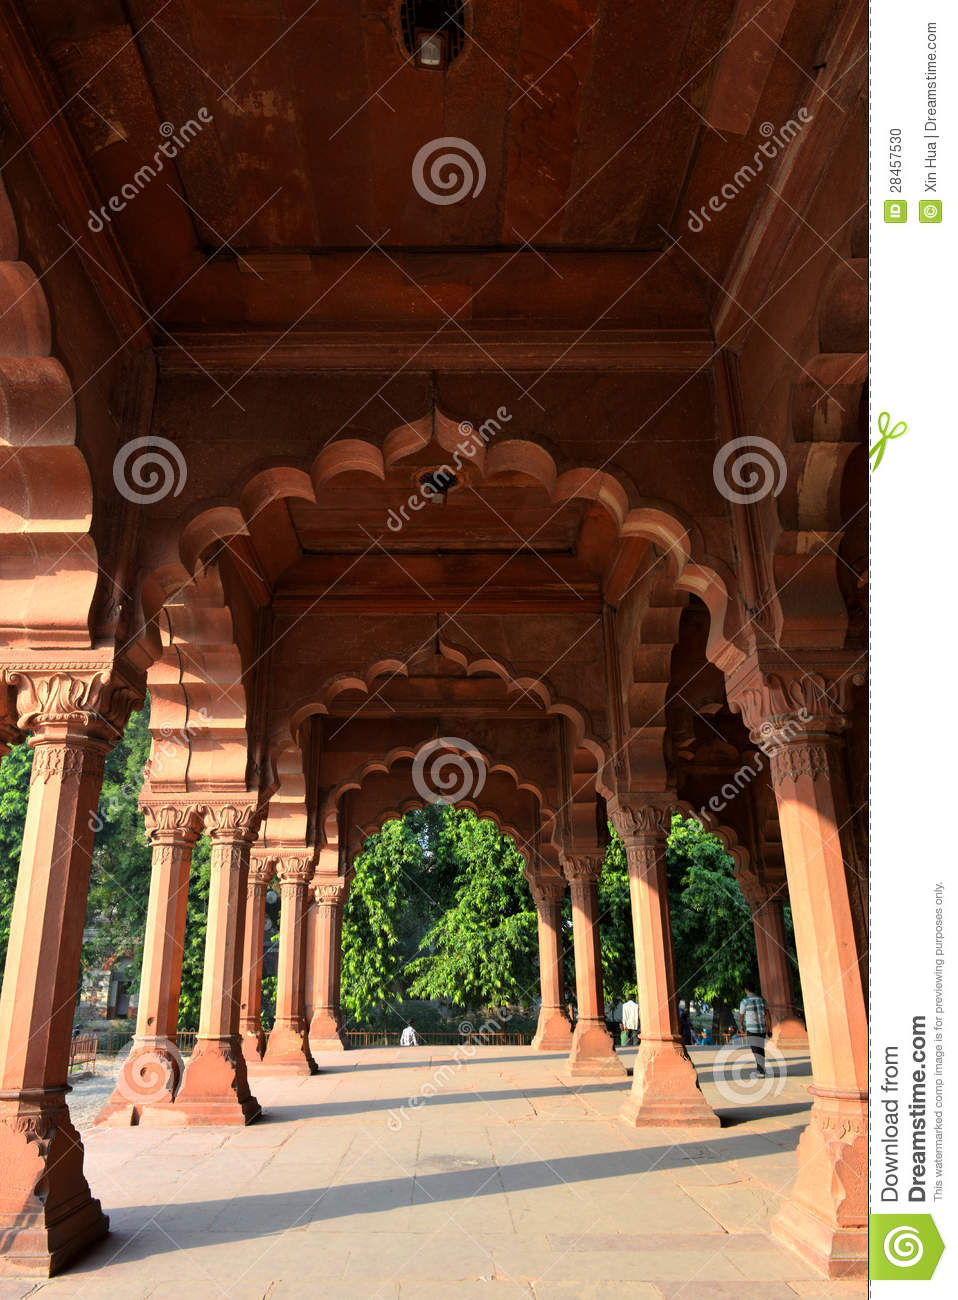 A History Of The Red Fort, Delhis Most Iconic Monument